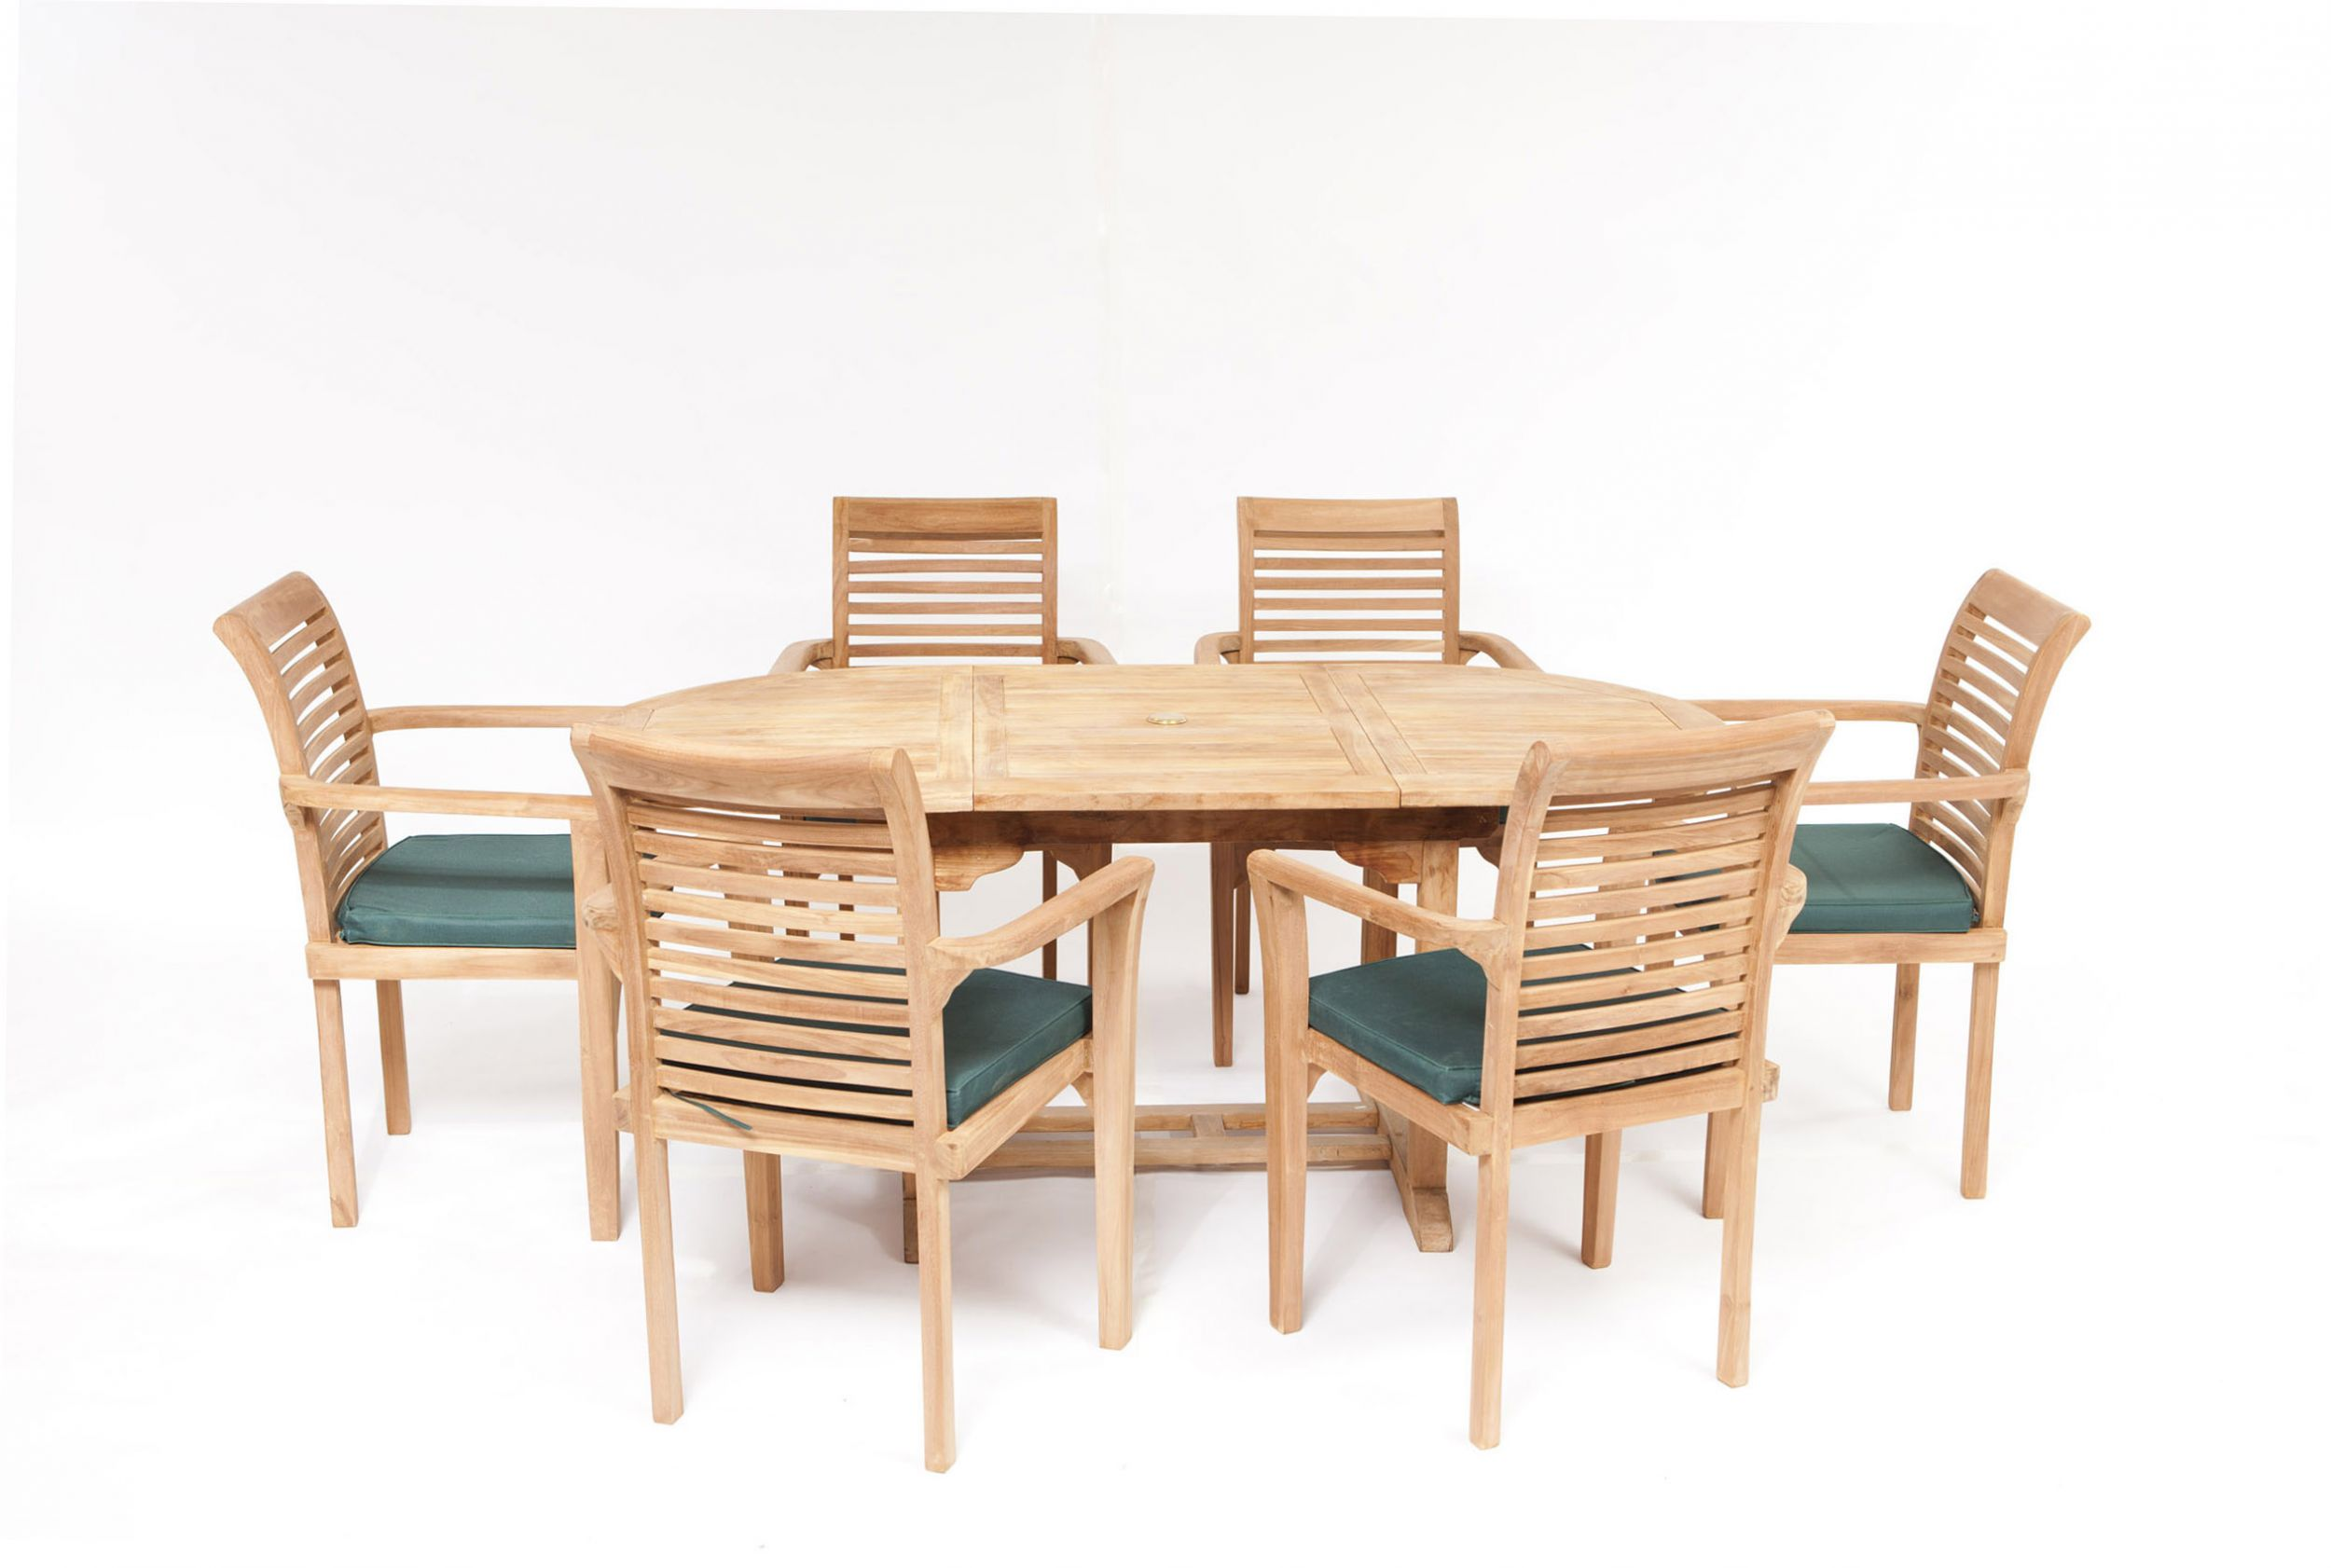 Paris Teak Dining Set Teak Garden Furniture Humber Imports